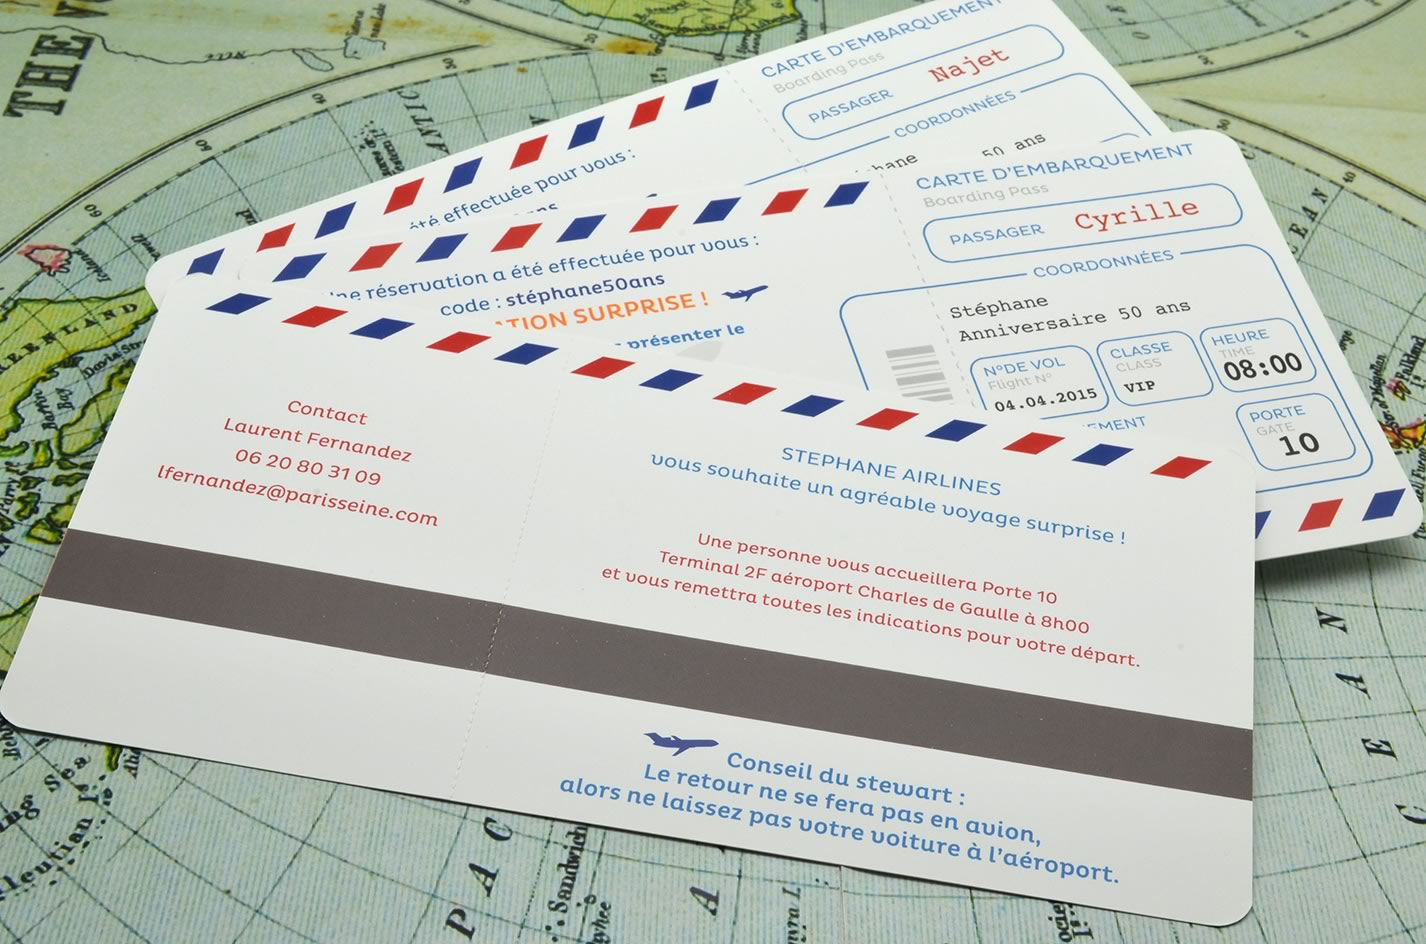 Billet Vol Carte Anniversaire 50 Ans Billet D Avion L Atelier D Elsa Faire